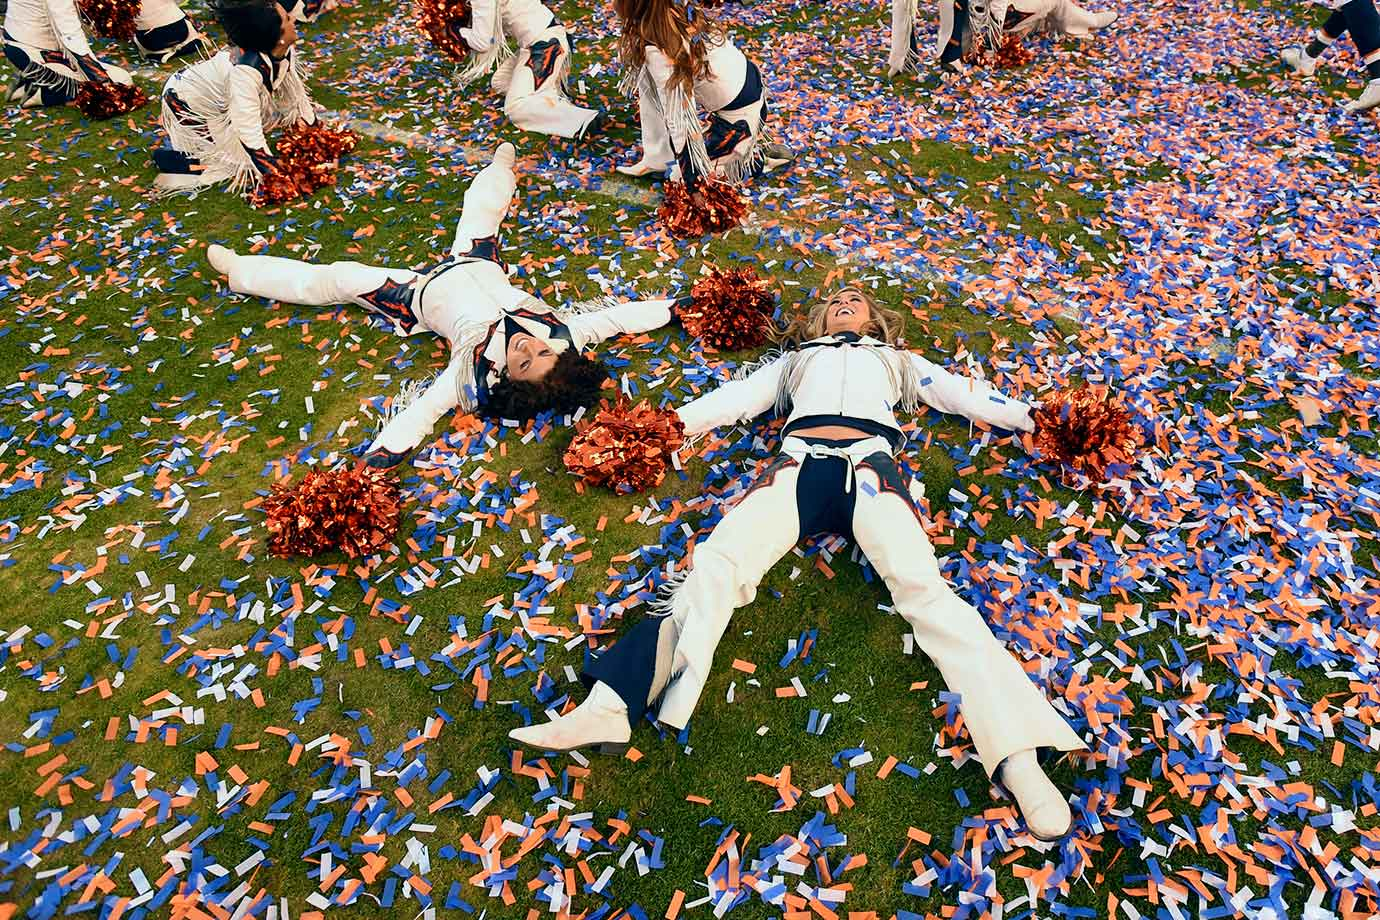 Denver Broncos cheerleaders make angles in the confetti after the team's 20-18 victory over the New England Patriots in the AFC Championship Game at Sports Authority Field at Mile High in Denver.